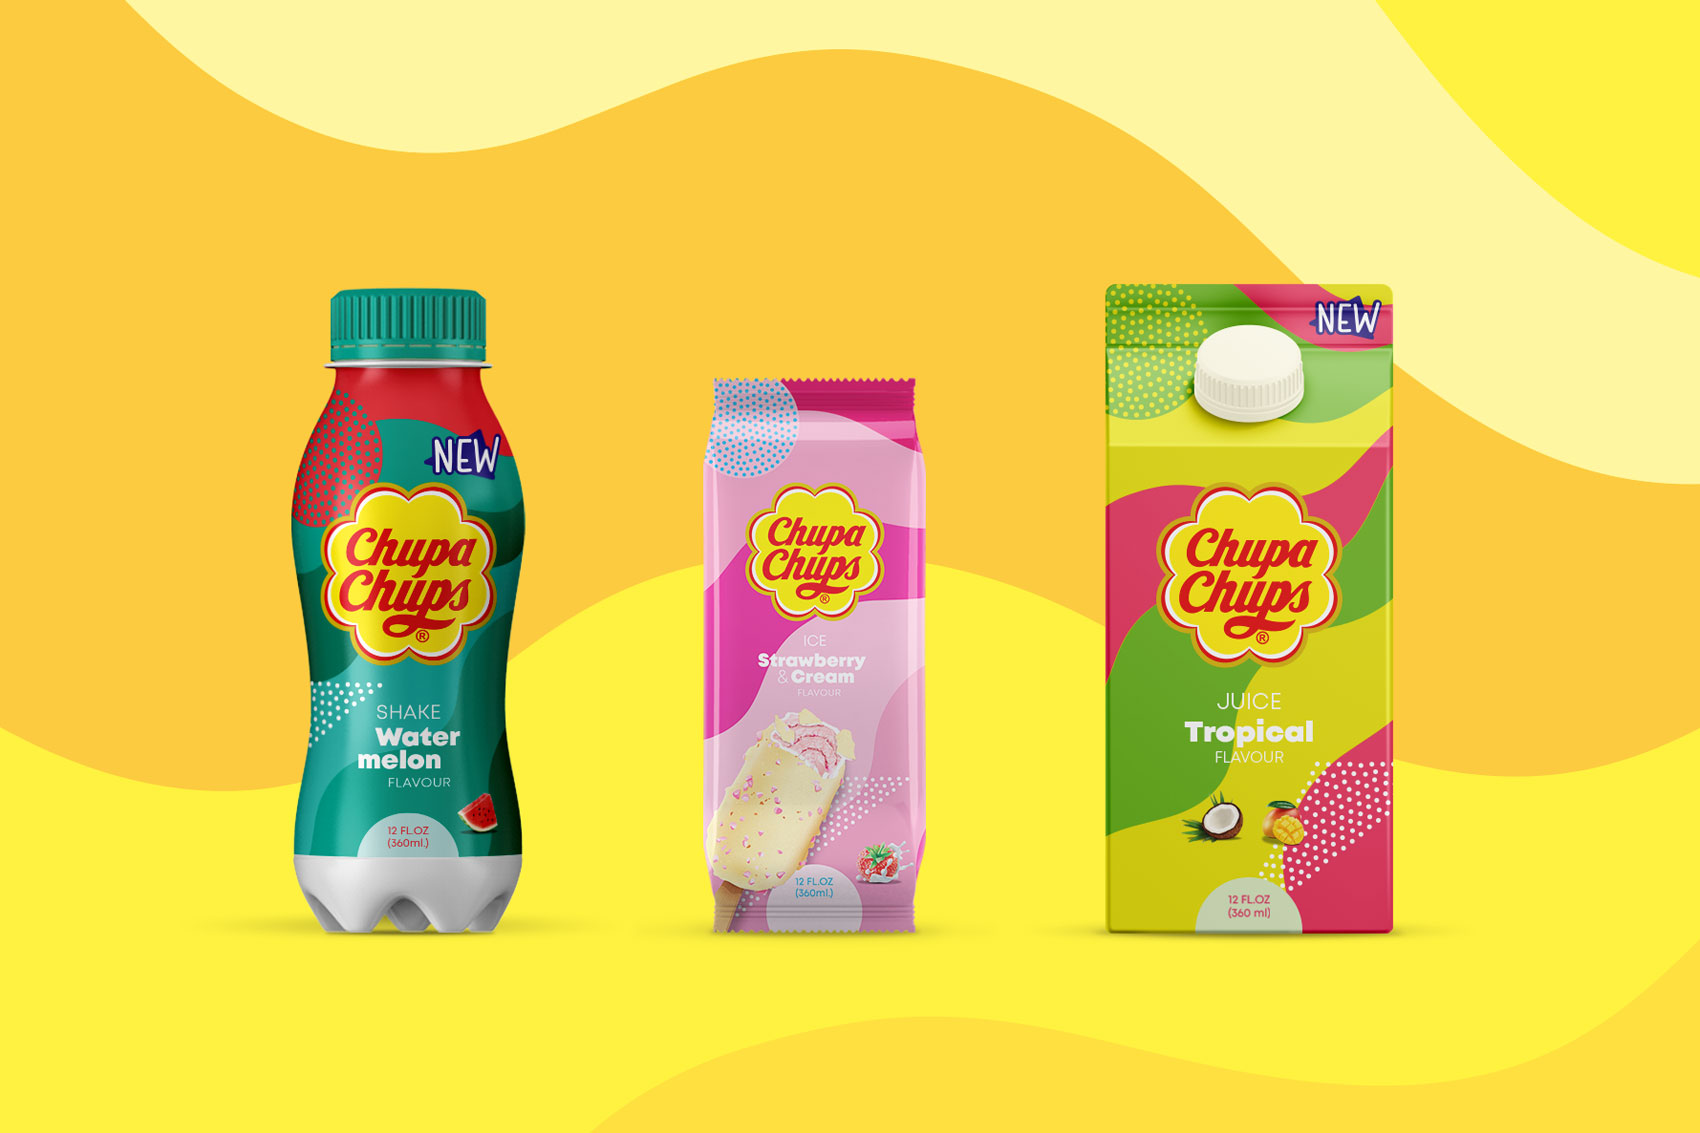 Vibranding designs the guidelines for Chupa Chups packaging licensing